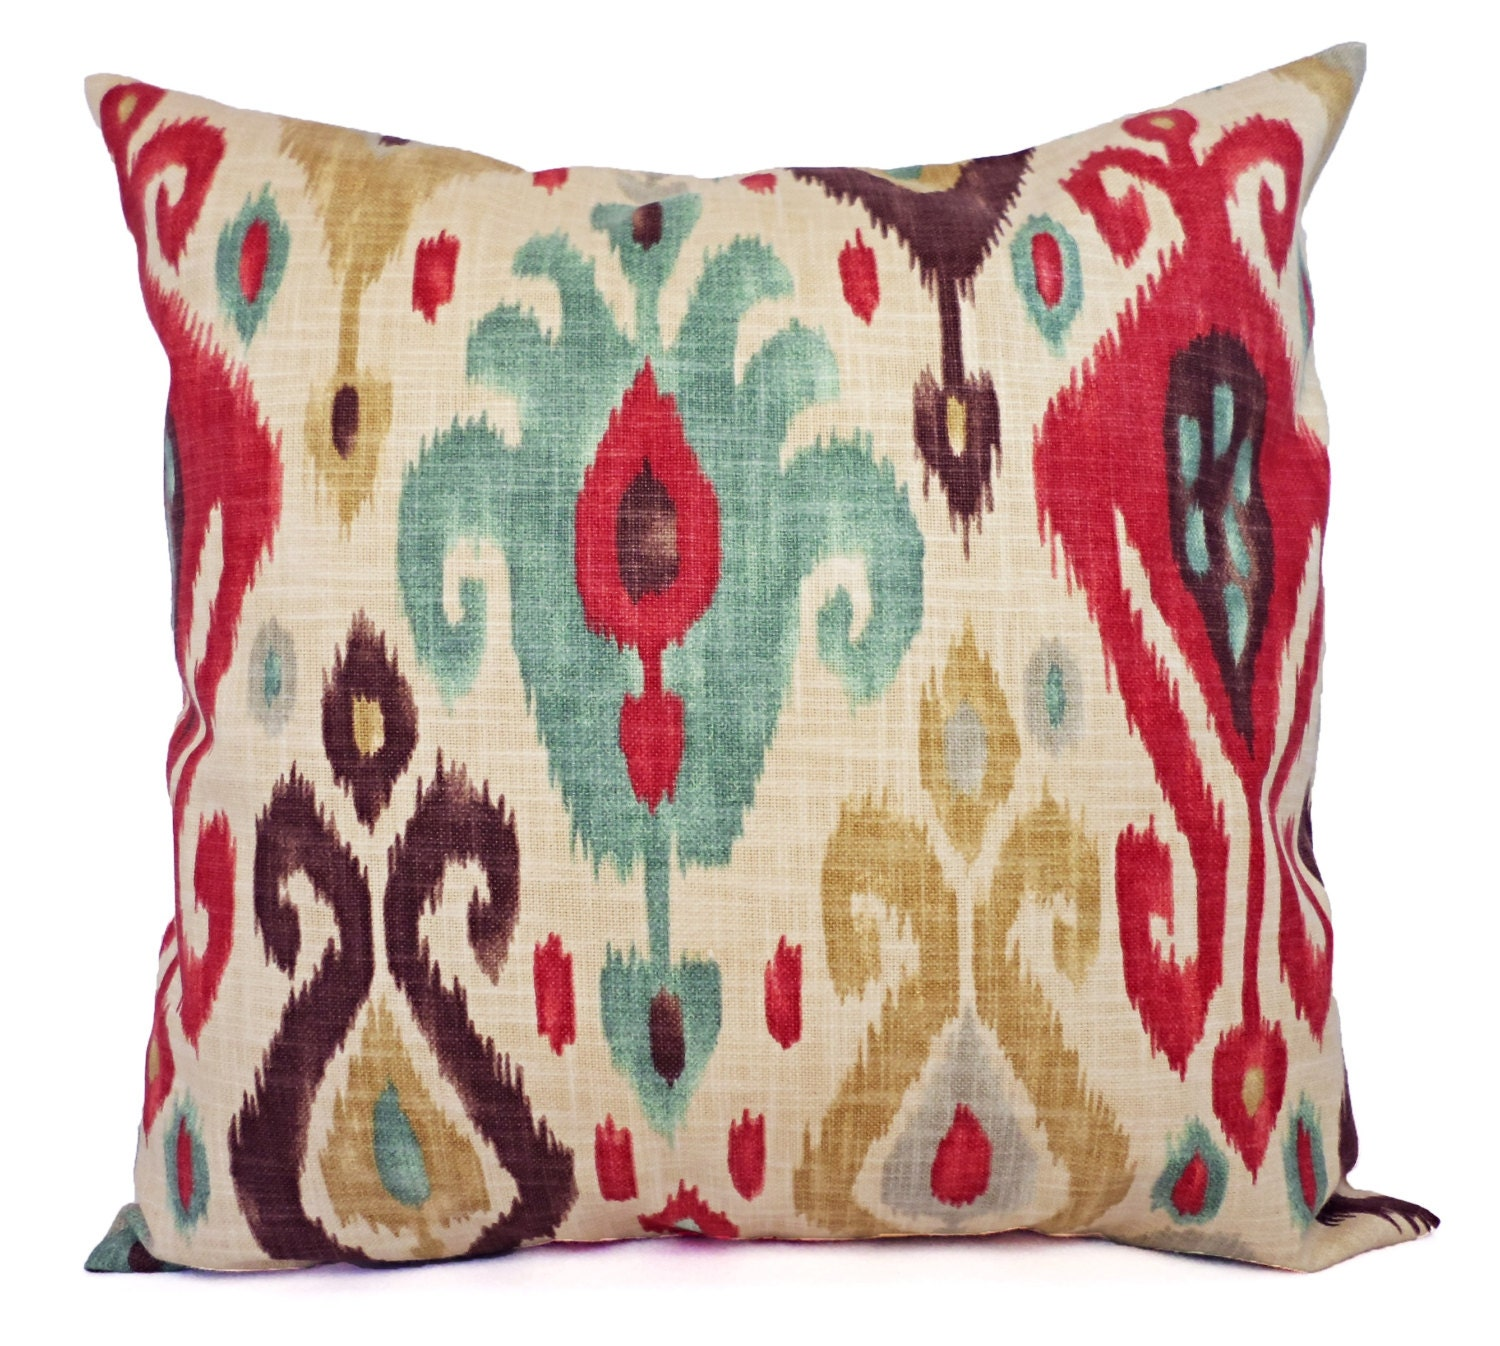 Throw Pillows With Covers : Two Ikat Throw Pillow Covers Red and Brown by CastawayCoveDecor